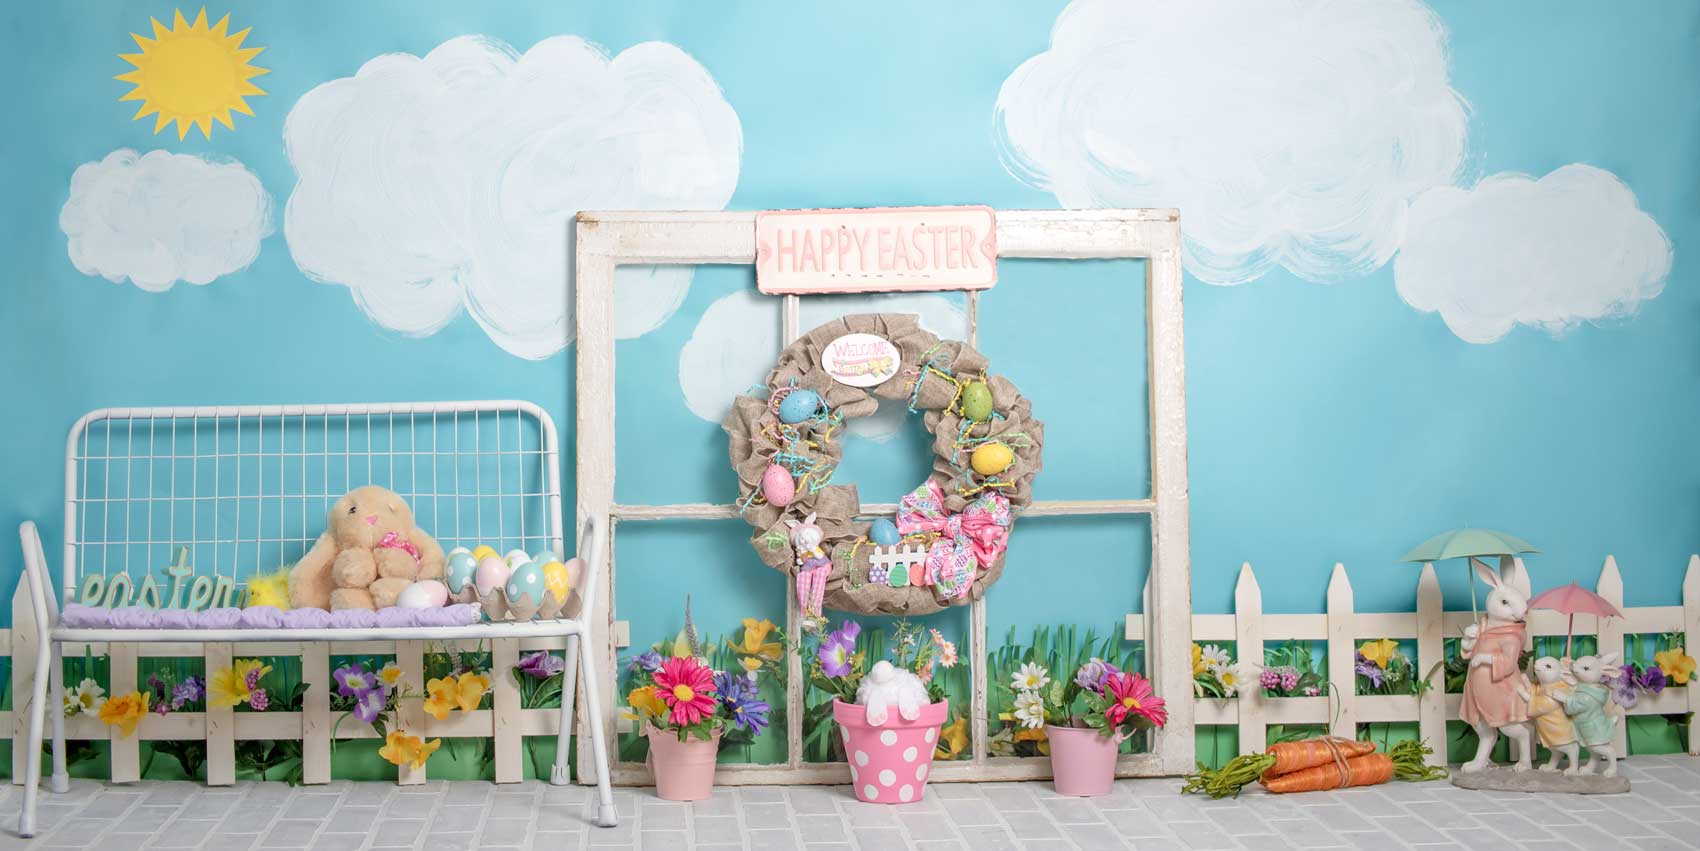 Load image into Gallery viewer, Kate Rabbits Decorations Easter Spring Children Backdrop for Photography Designed by Erin Larkins